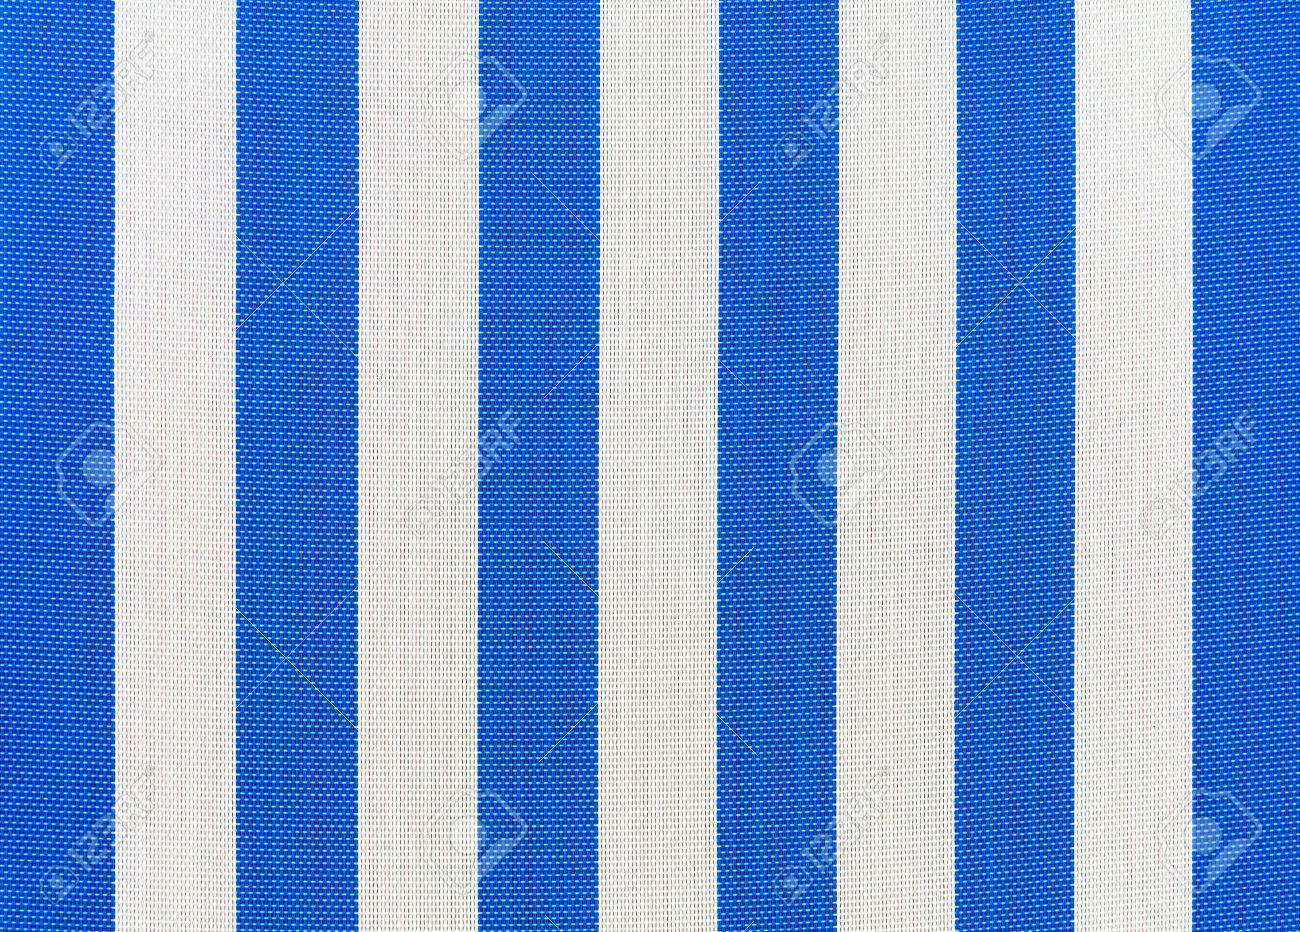 Swell Blue And White Striped Fabric Of An Outdoor Lounge Chair Dailytribune Chair Design For Home Dailytribuneorg